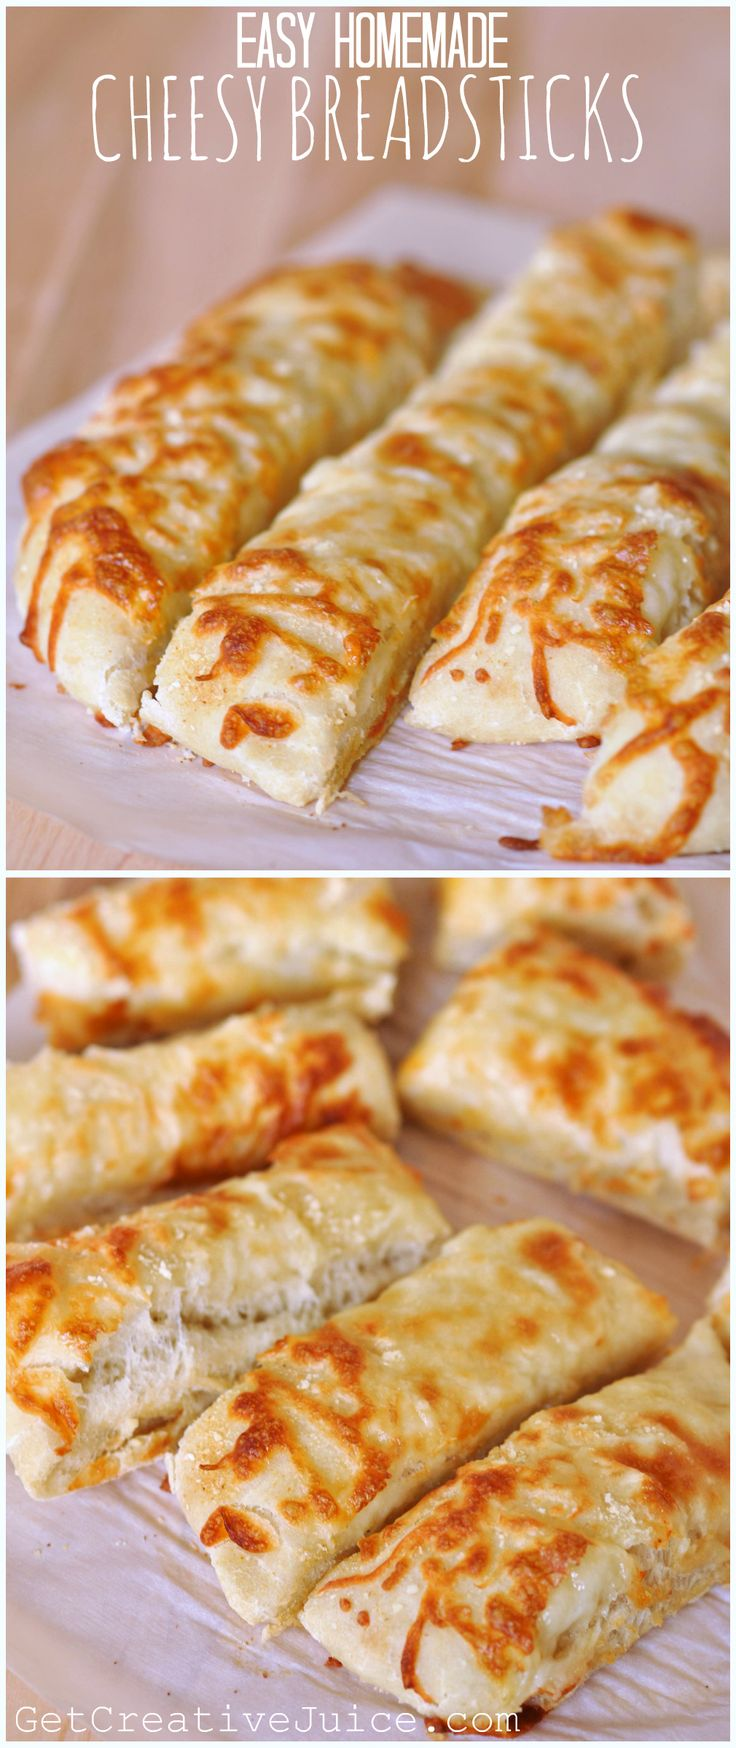 Easy Homemade Cheesy Breadsticks Recipe - so good and really easy!